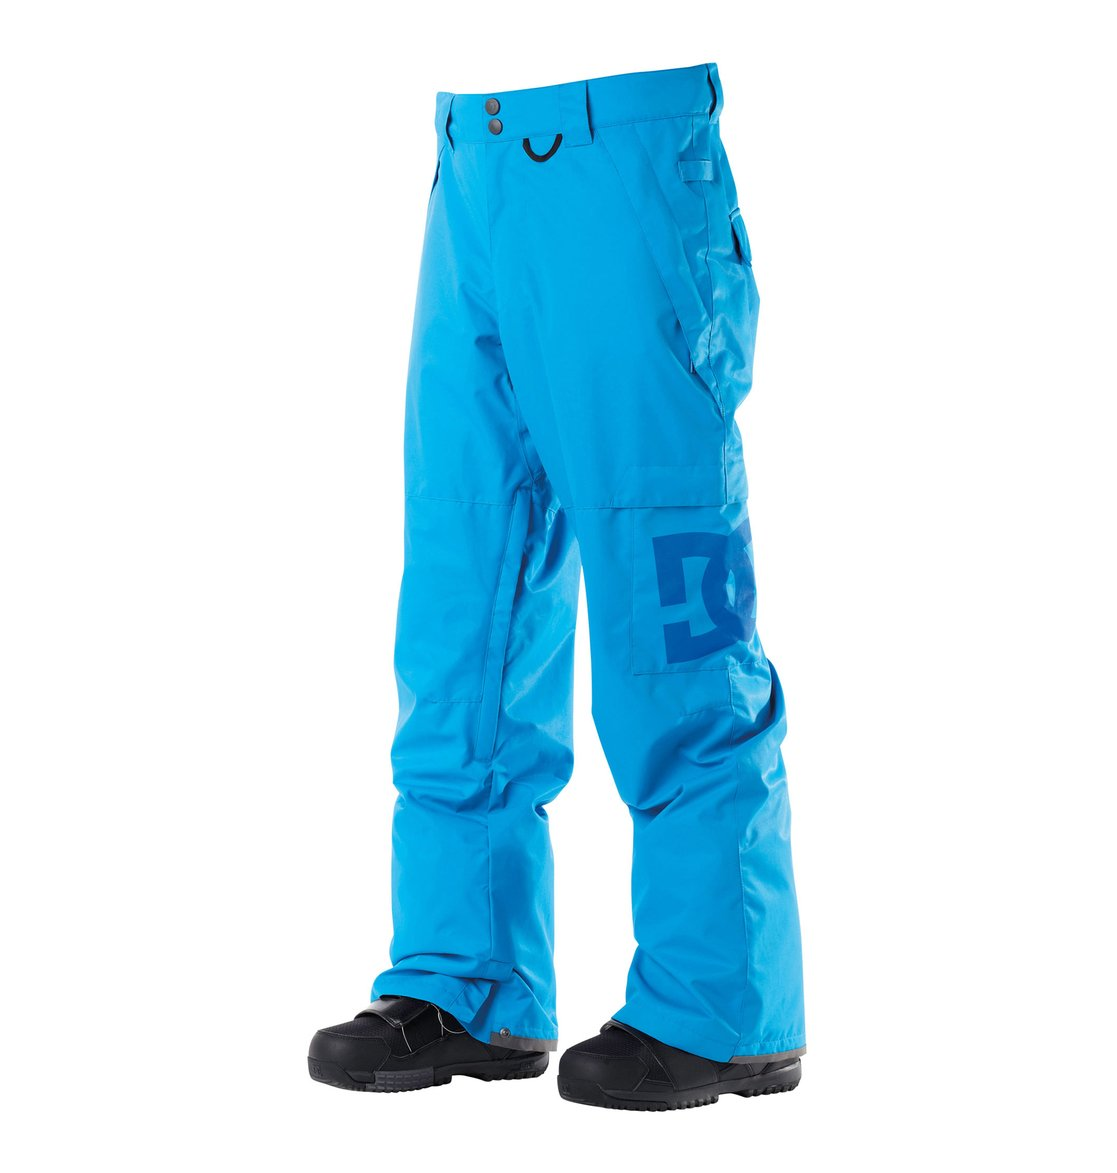 Snow womens pants for skiing and snowboarding photo